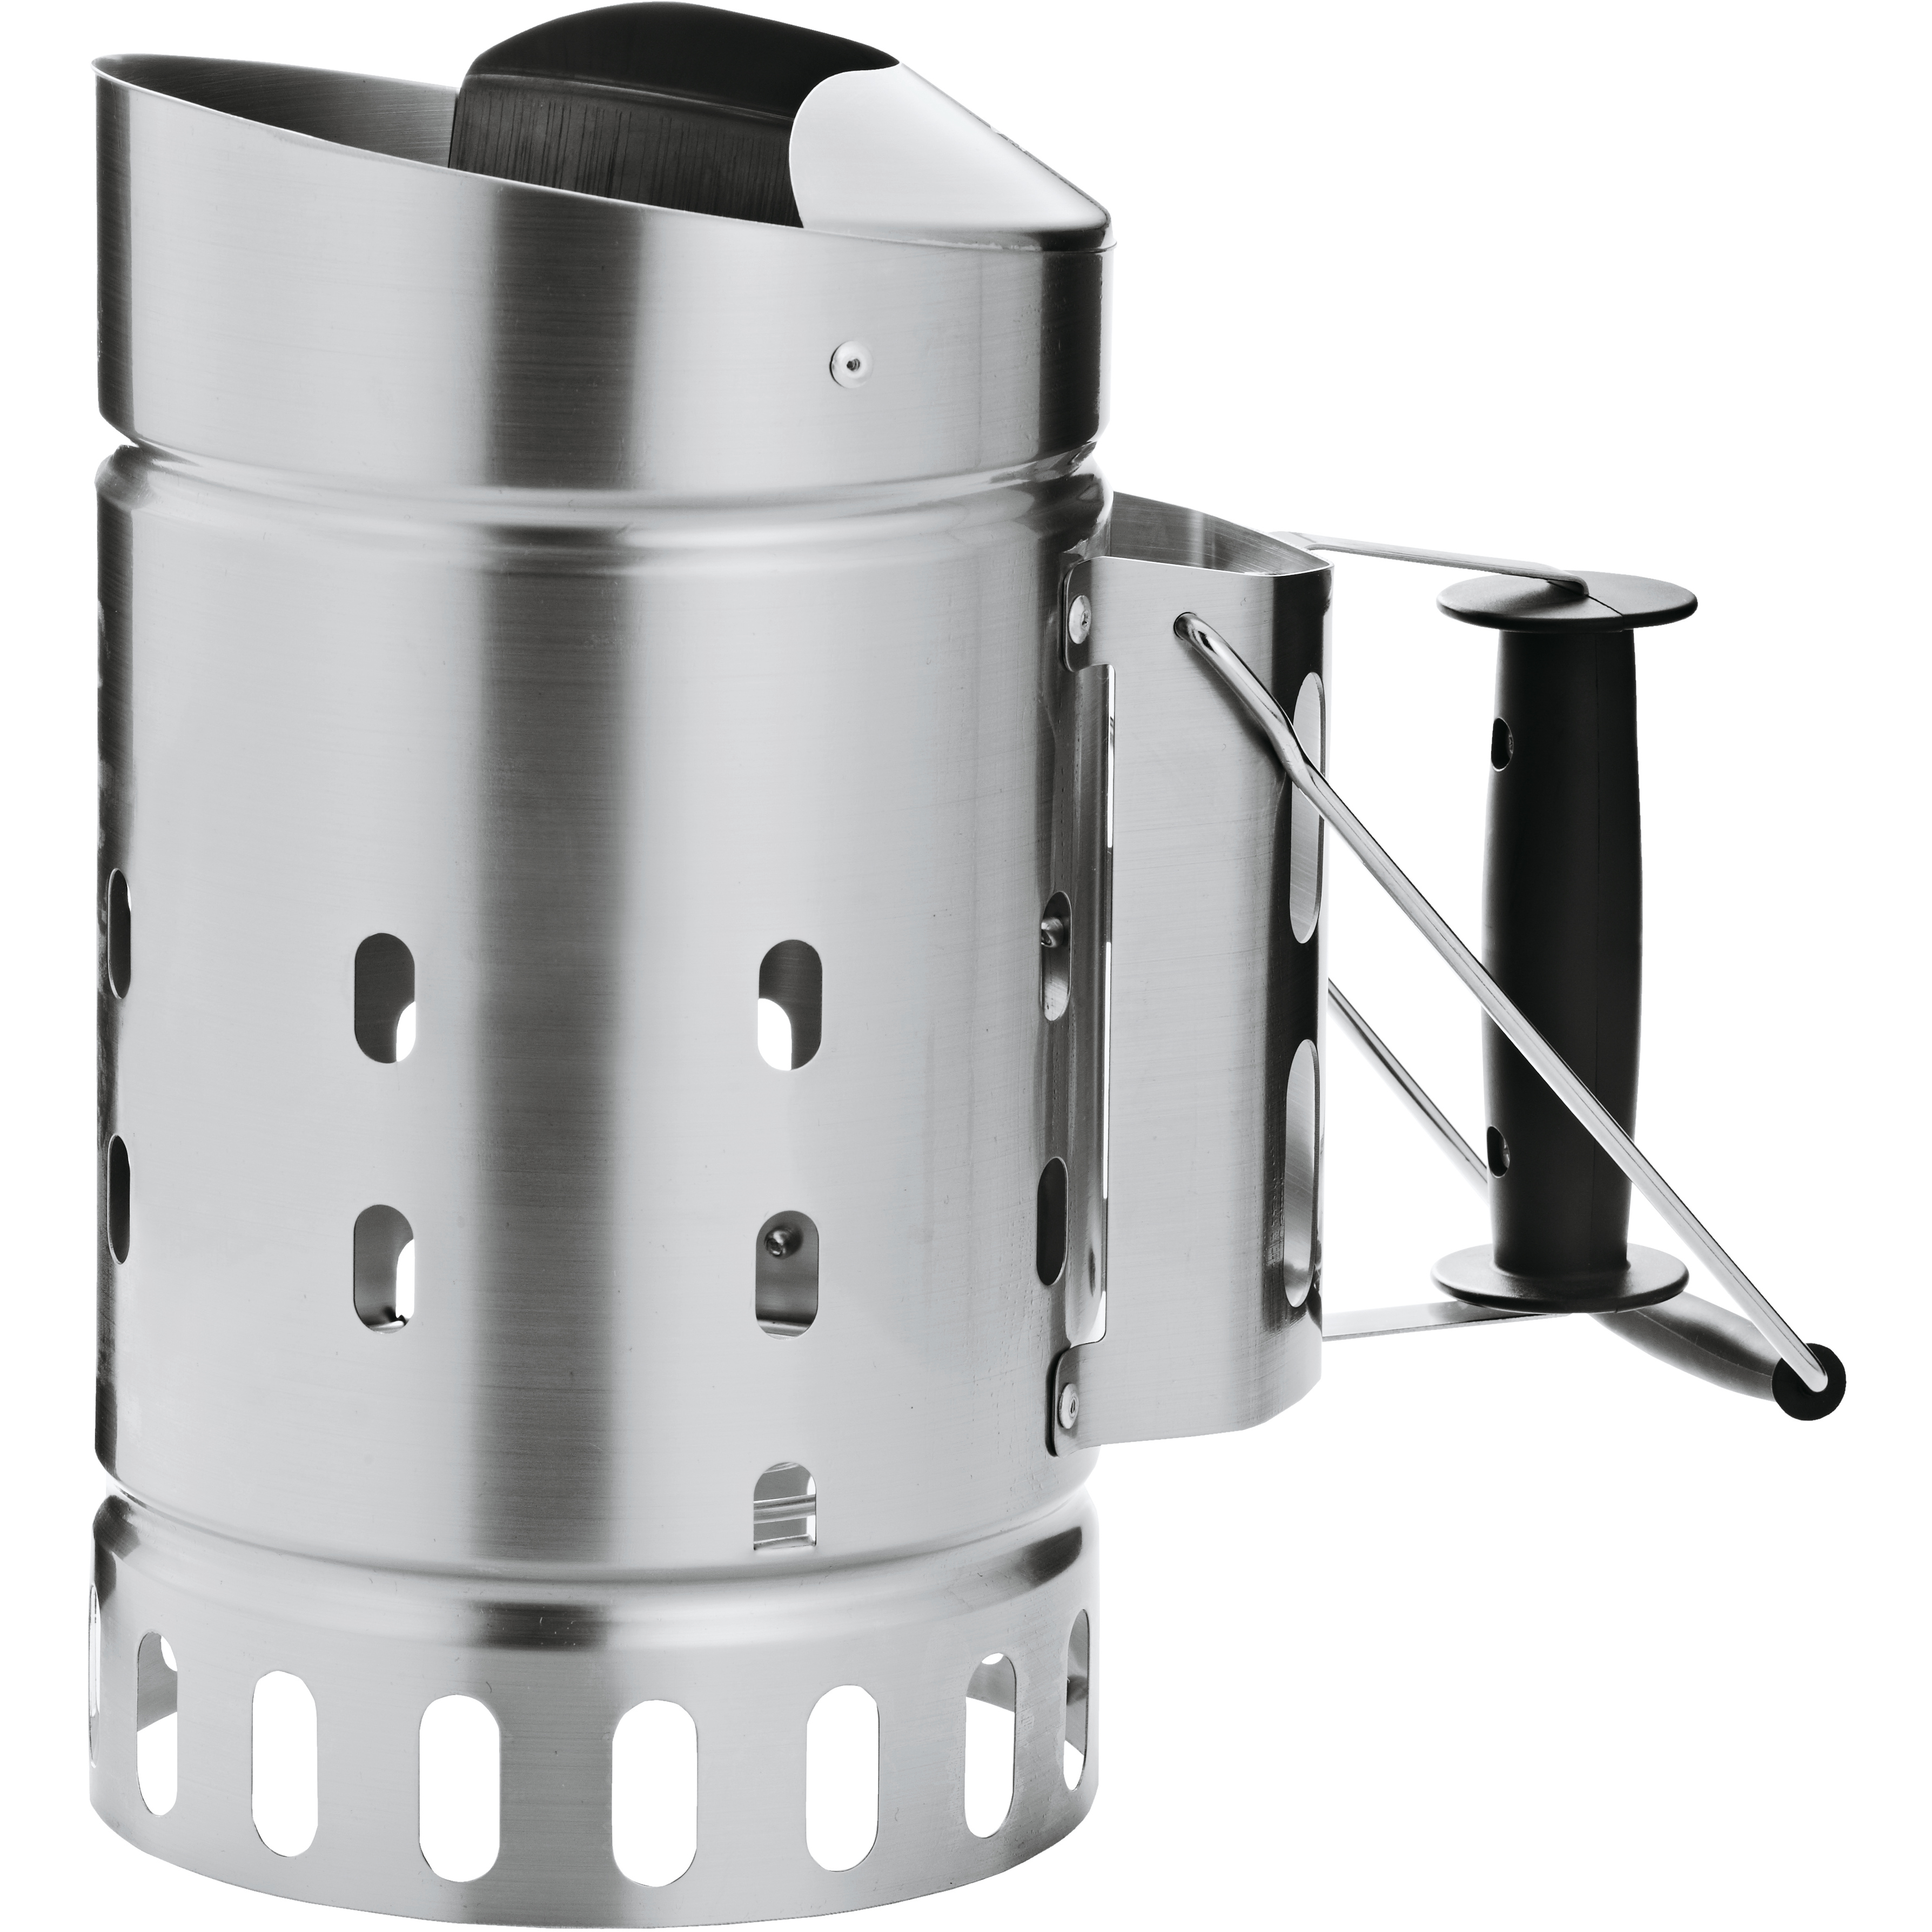 Rosle Silver Stainless Steel Charcoal Starter